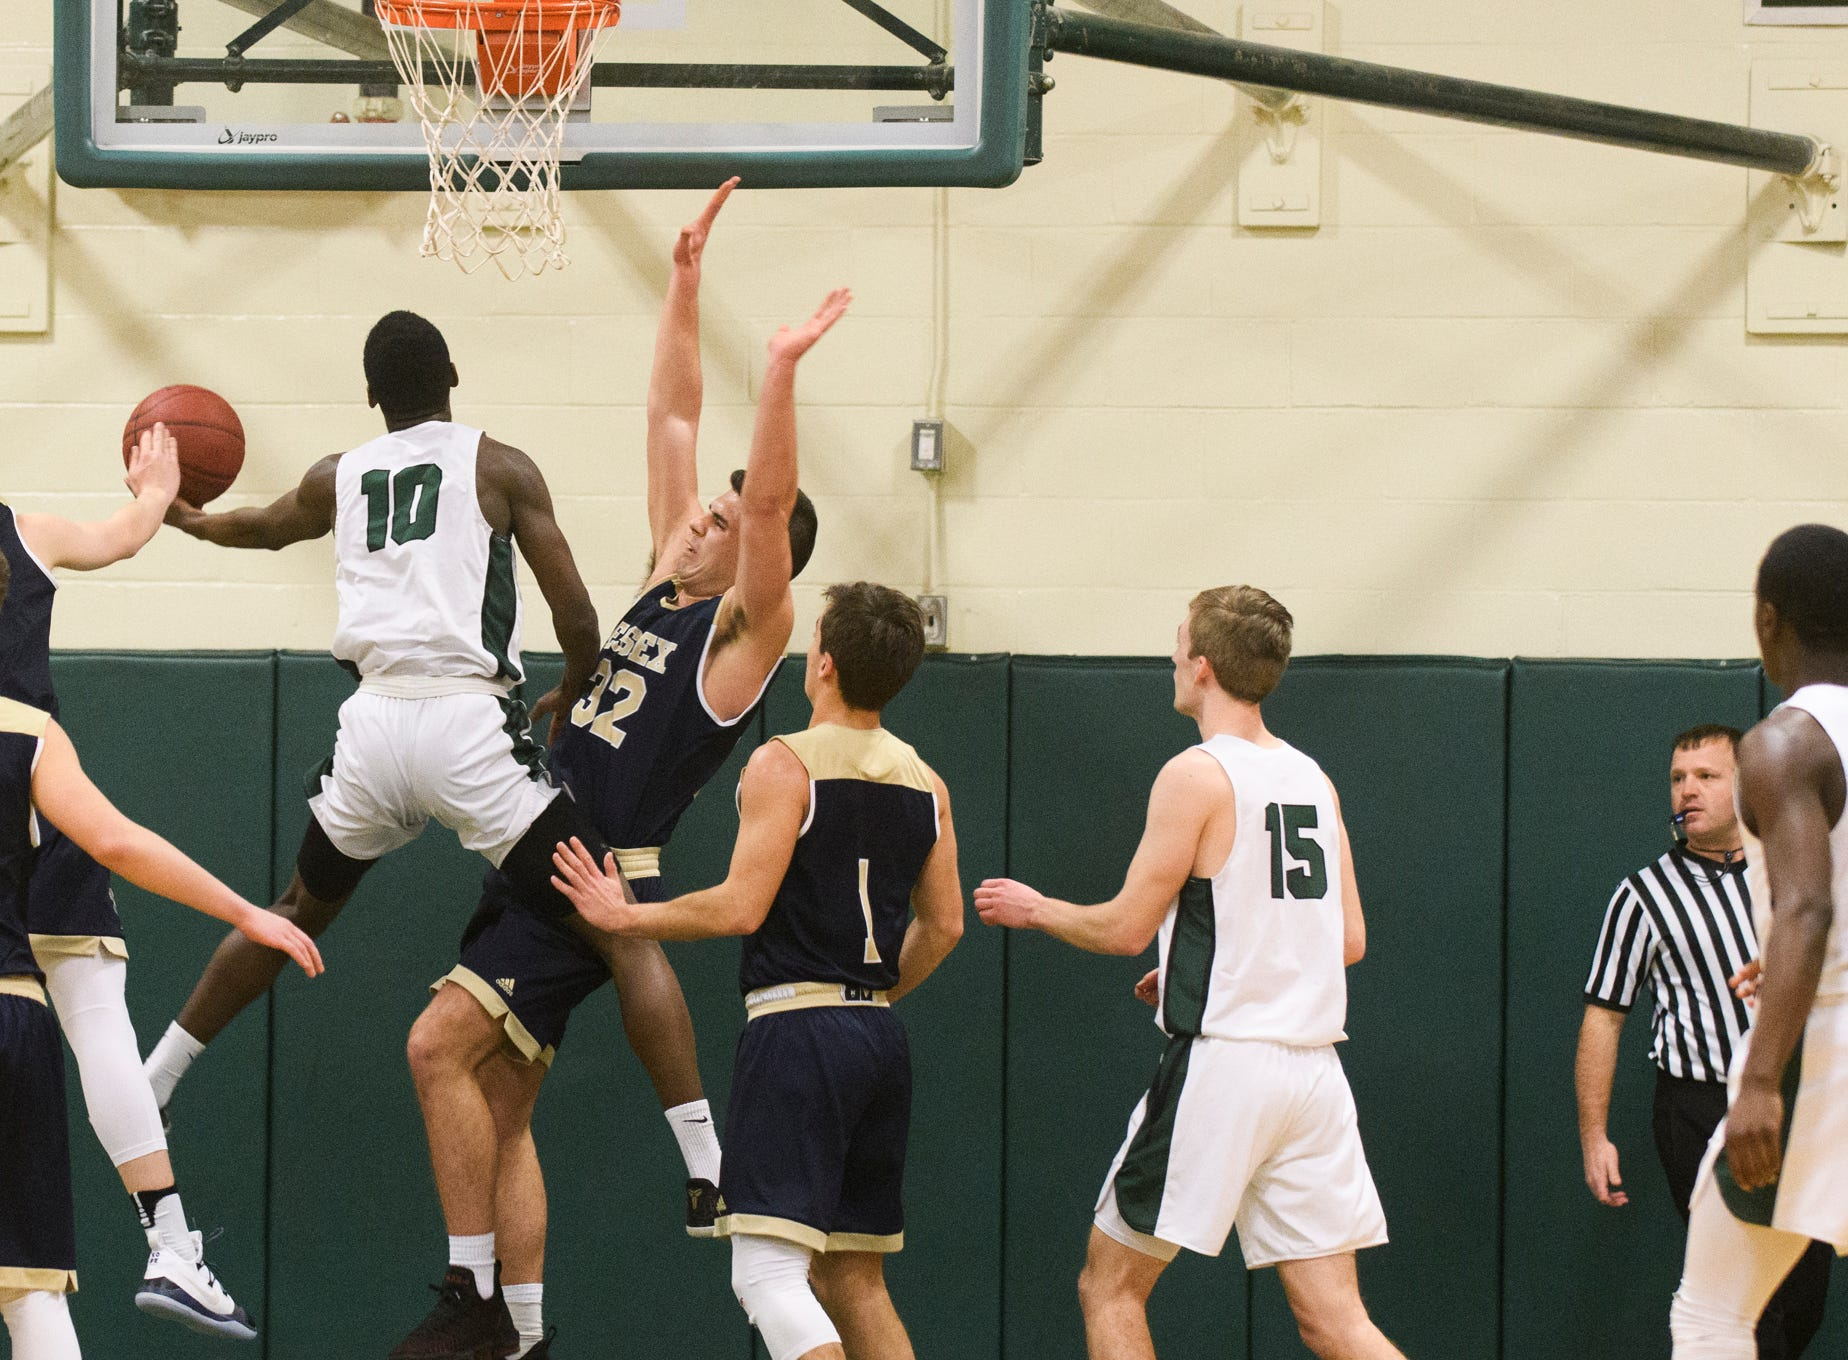 Rice's Leo Chaikin (10) leaps for a lay up during the boys quarterfinal basketball game between the Essex Hornets and the Rice Green Knights at Rice Memorial High School on Friday night March 8, 2019 in South Burlington, Vermont.